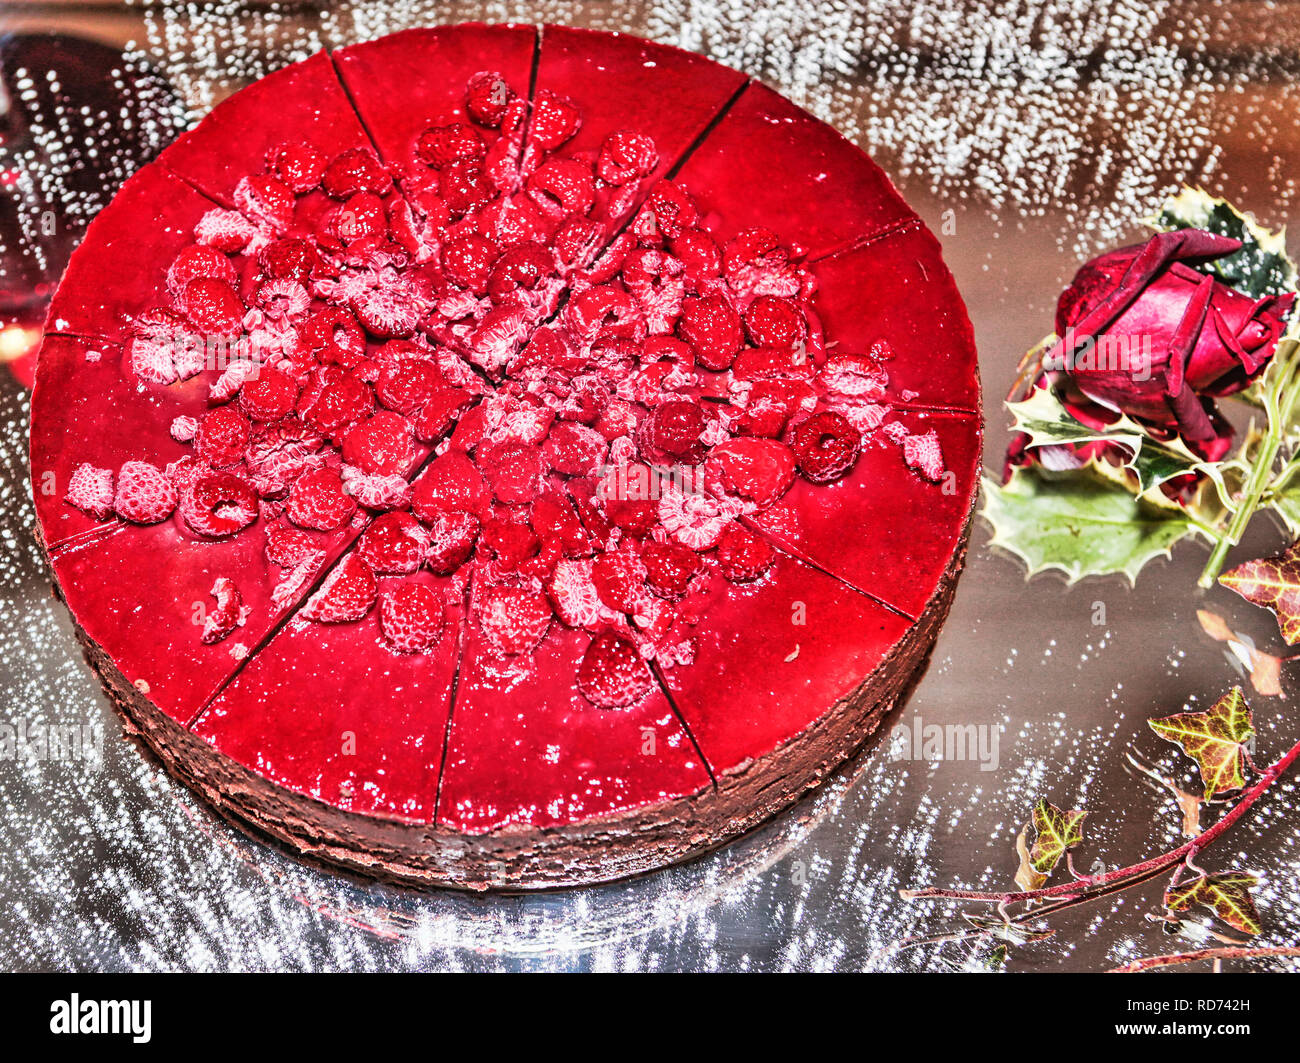 Multi Layer cake filled with cream and raspberries served on a mirror bowl dusted with icing sugar and decorative plants - Stock Image